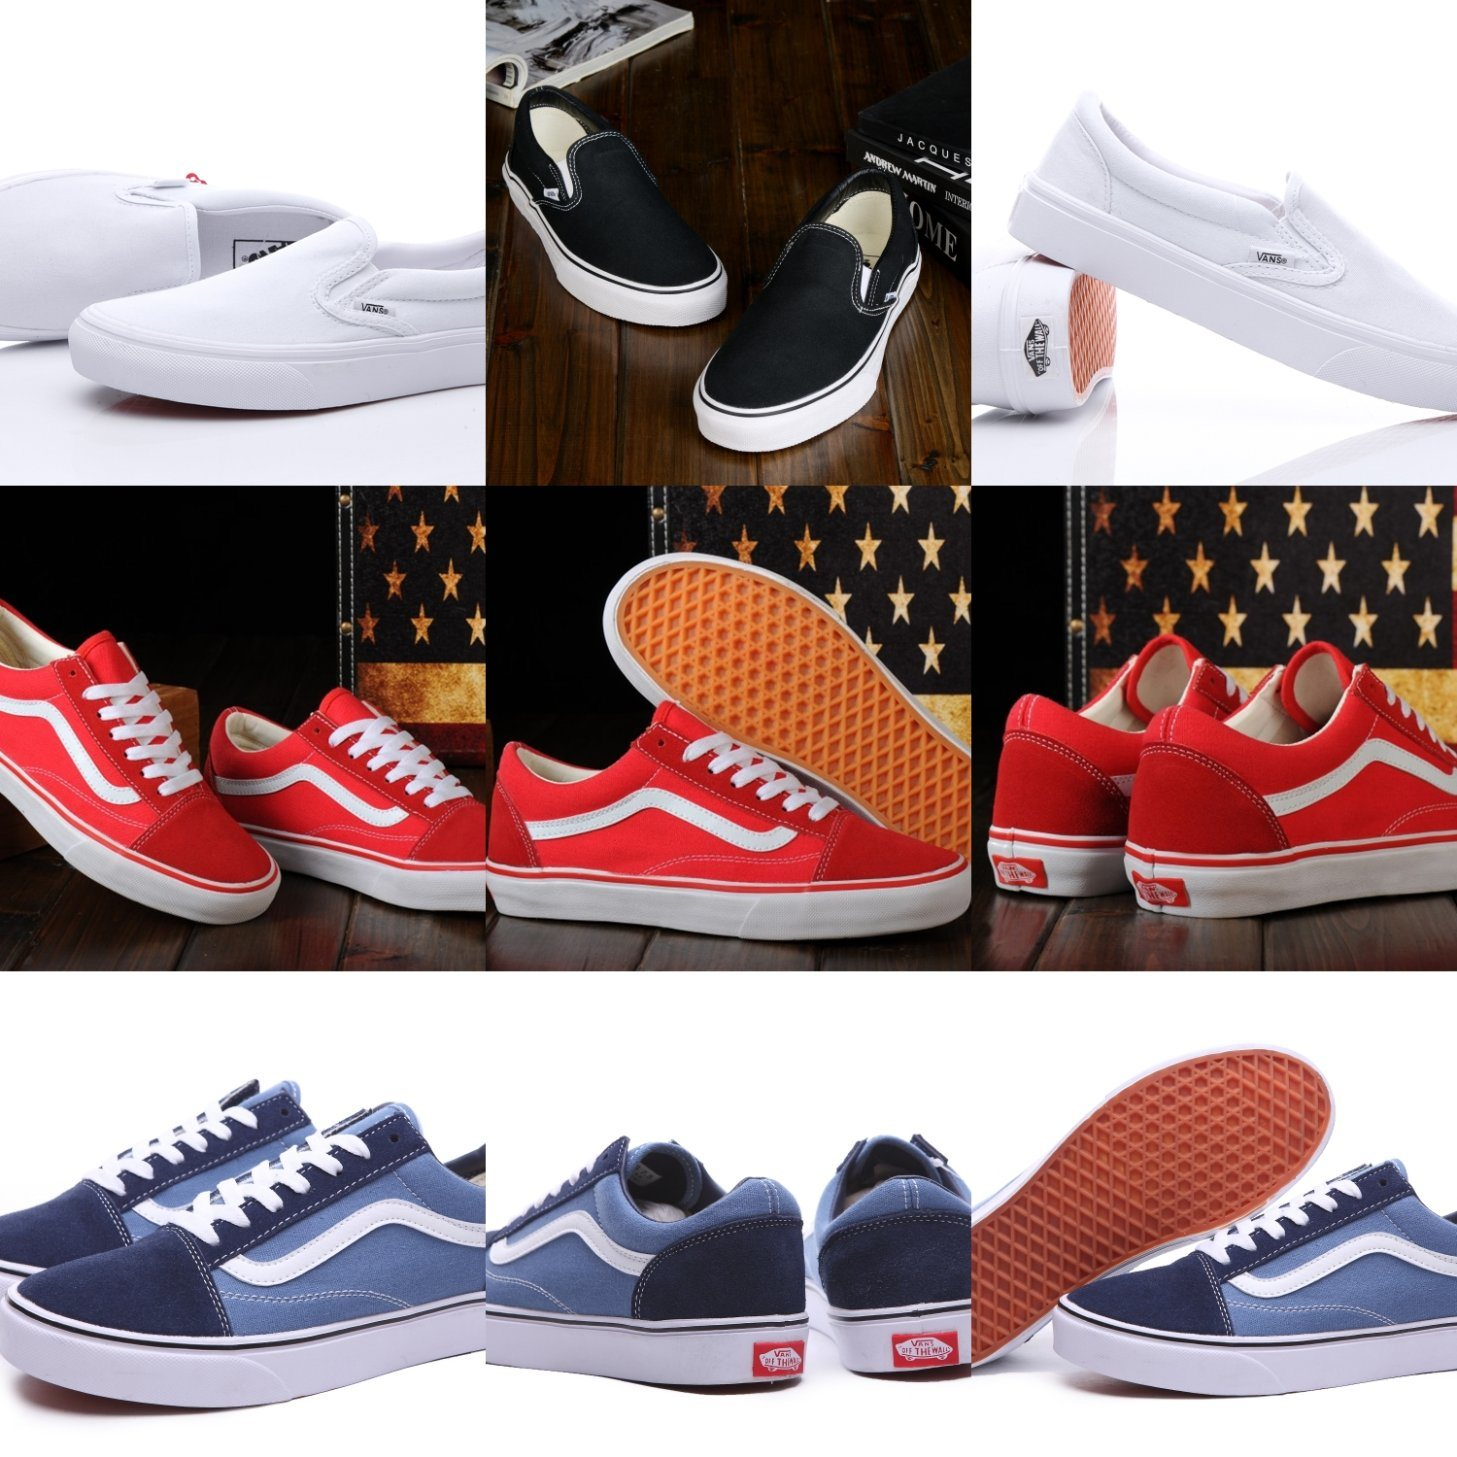 China Factory Outlet Old Skool Low Top